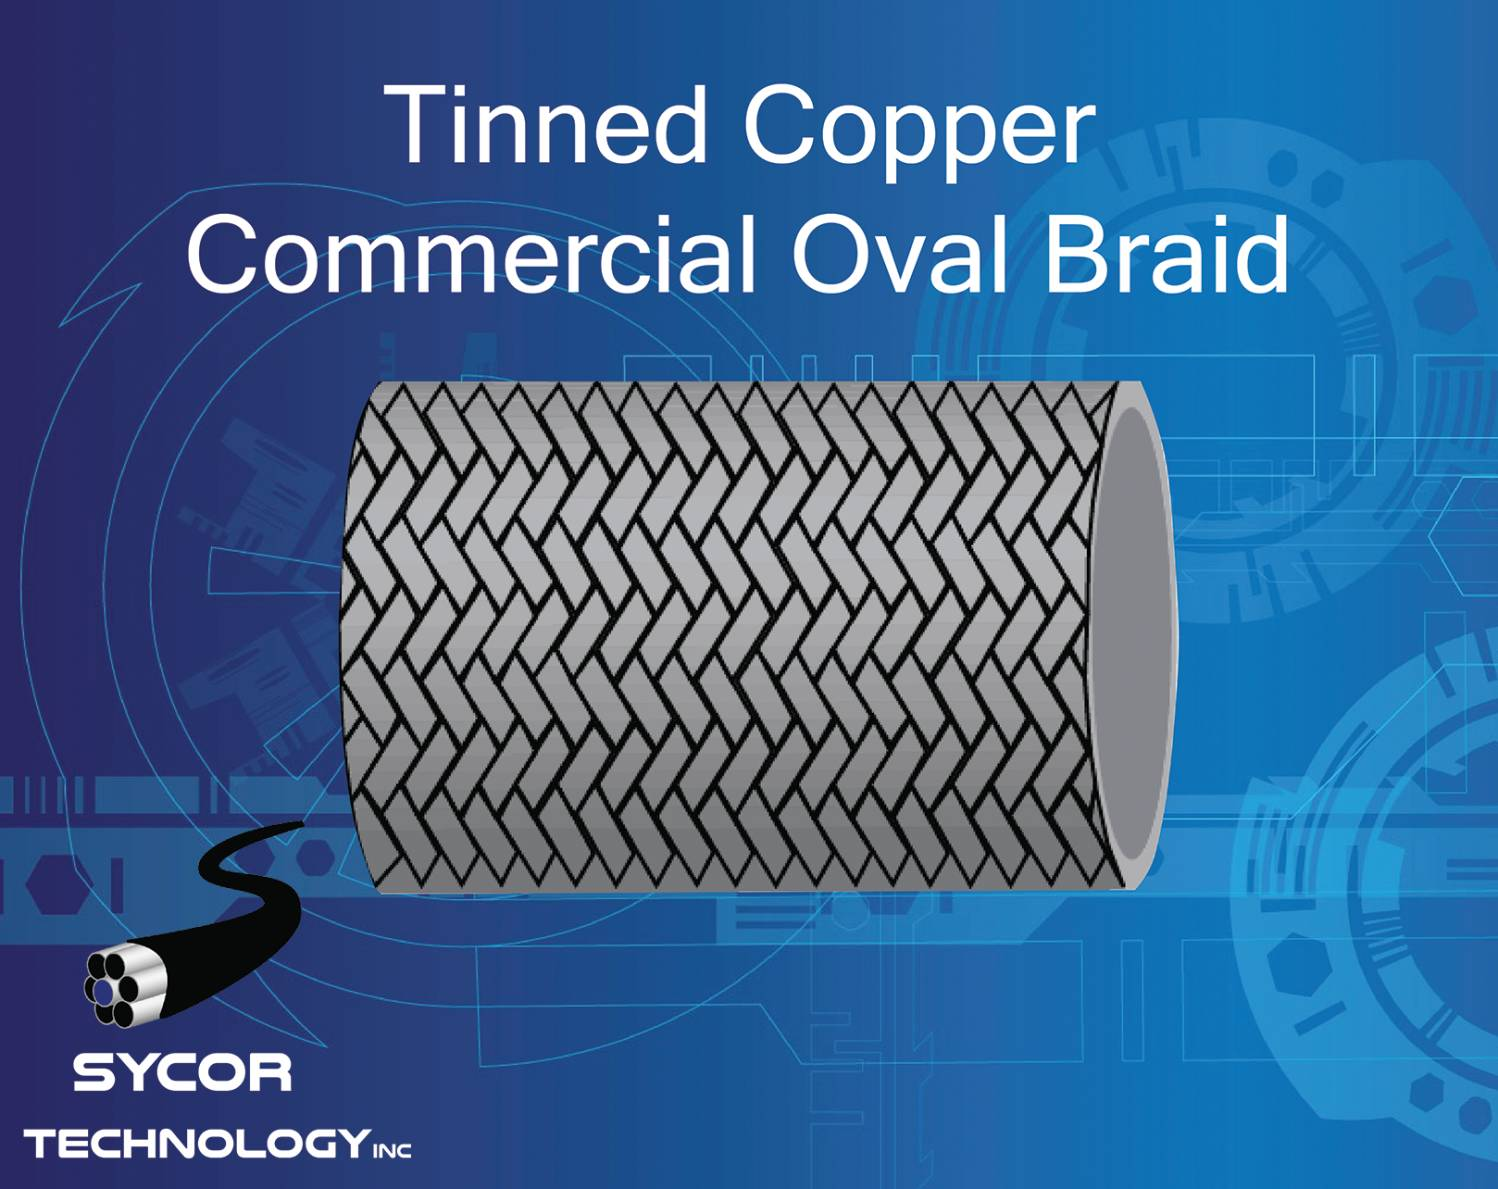 Tinned Copper Commercial Oval Braid